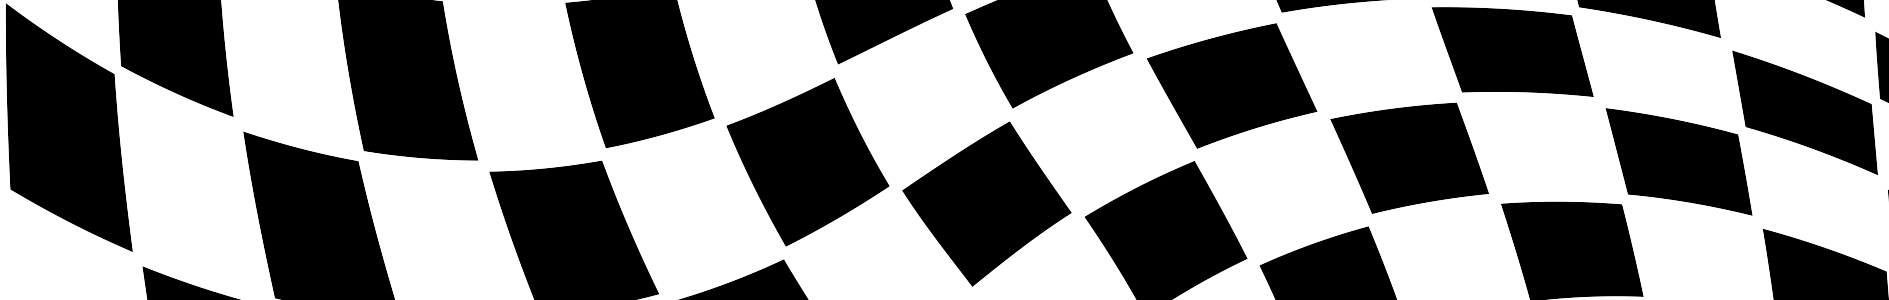 2 checkered flag white background